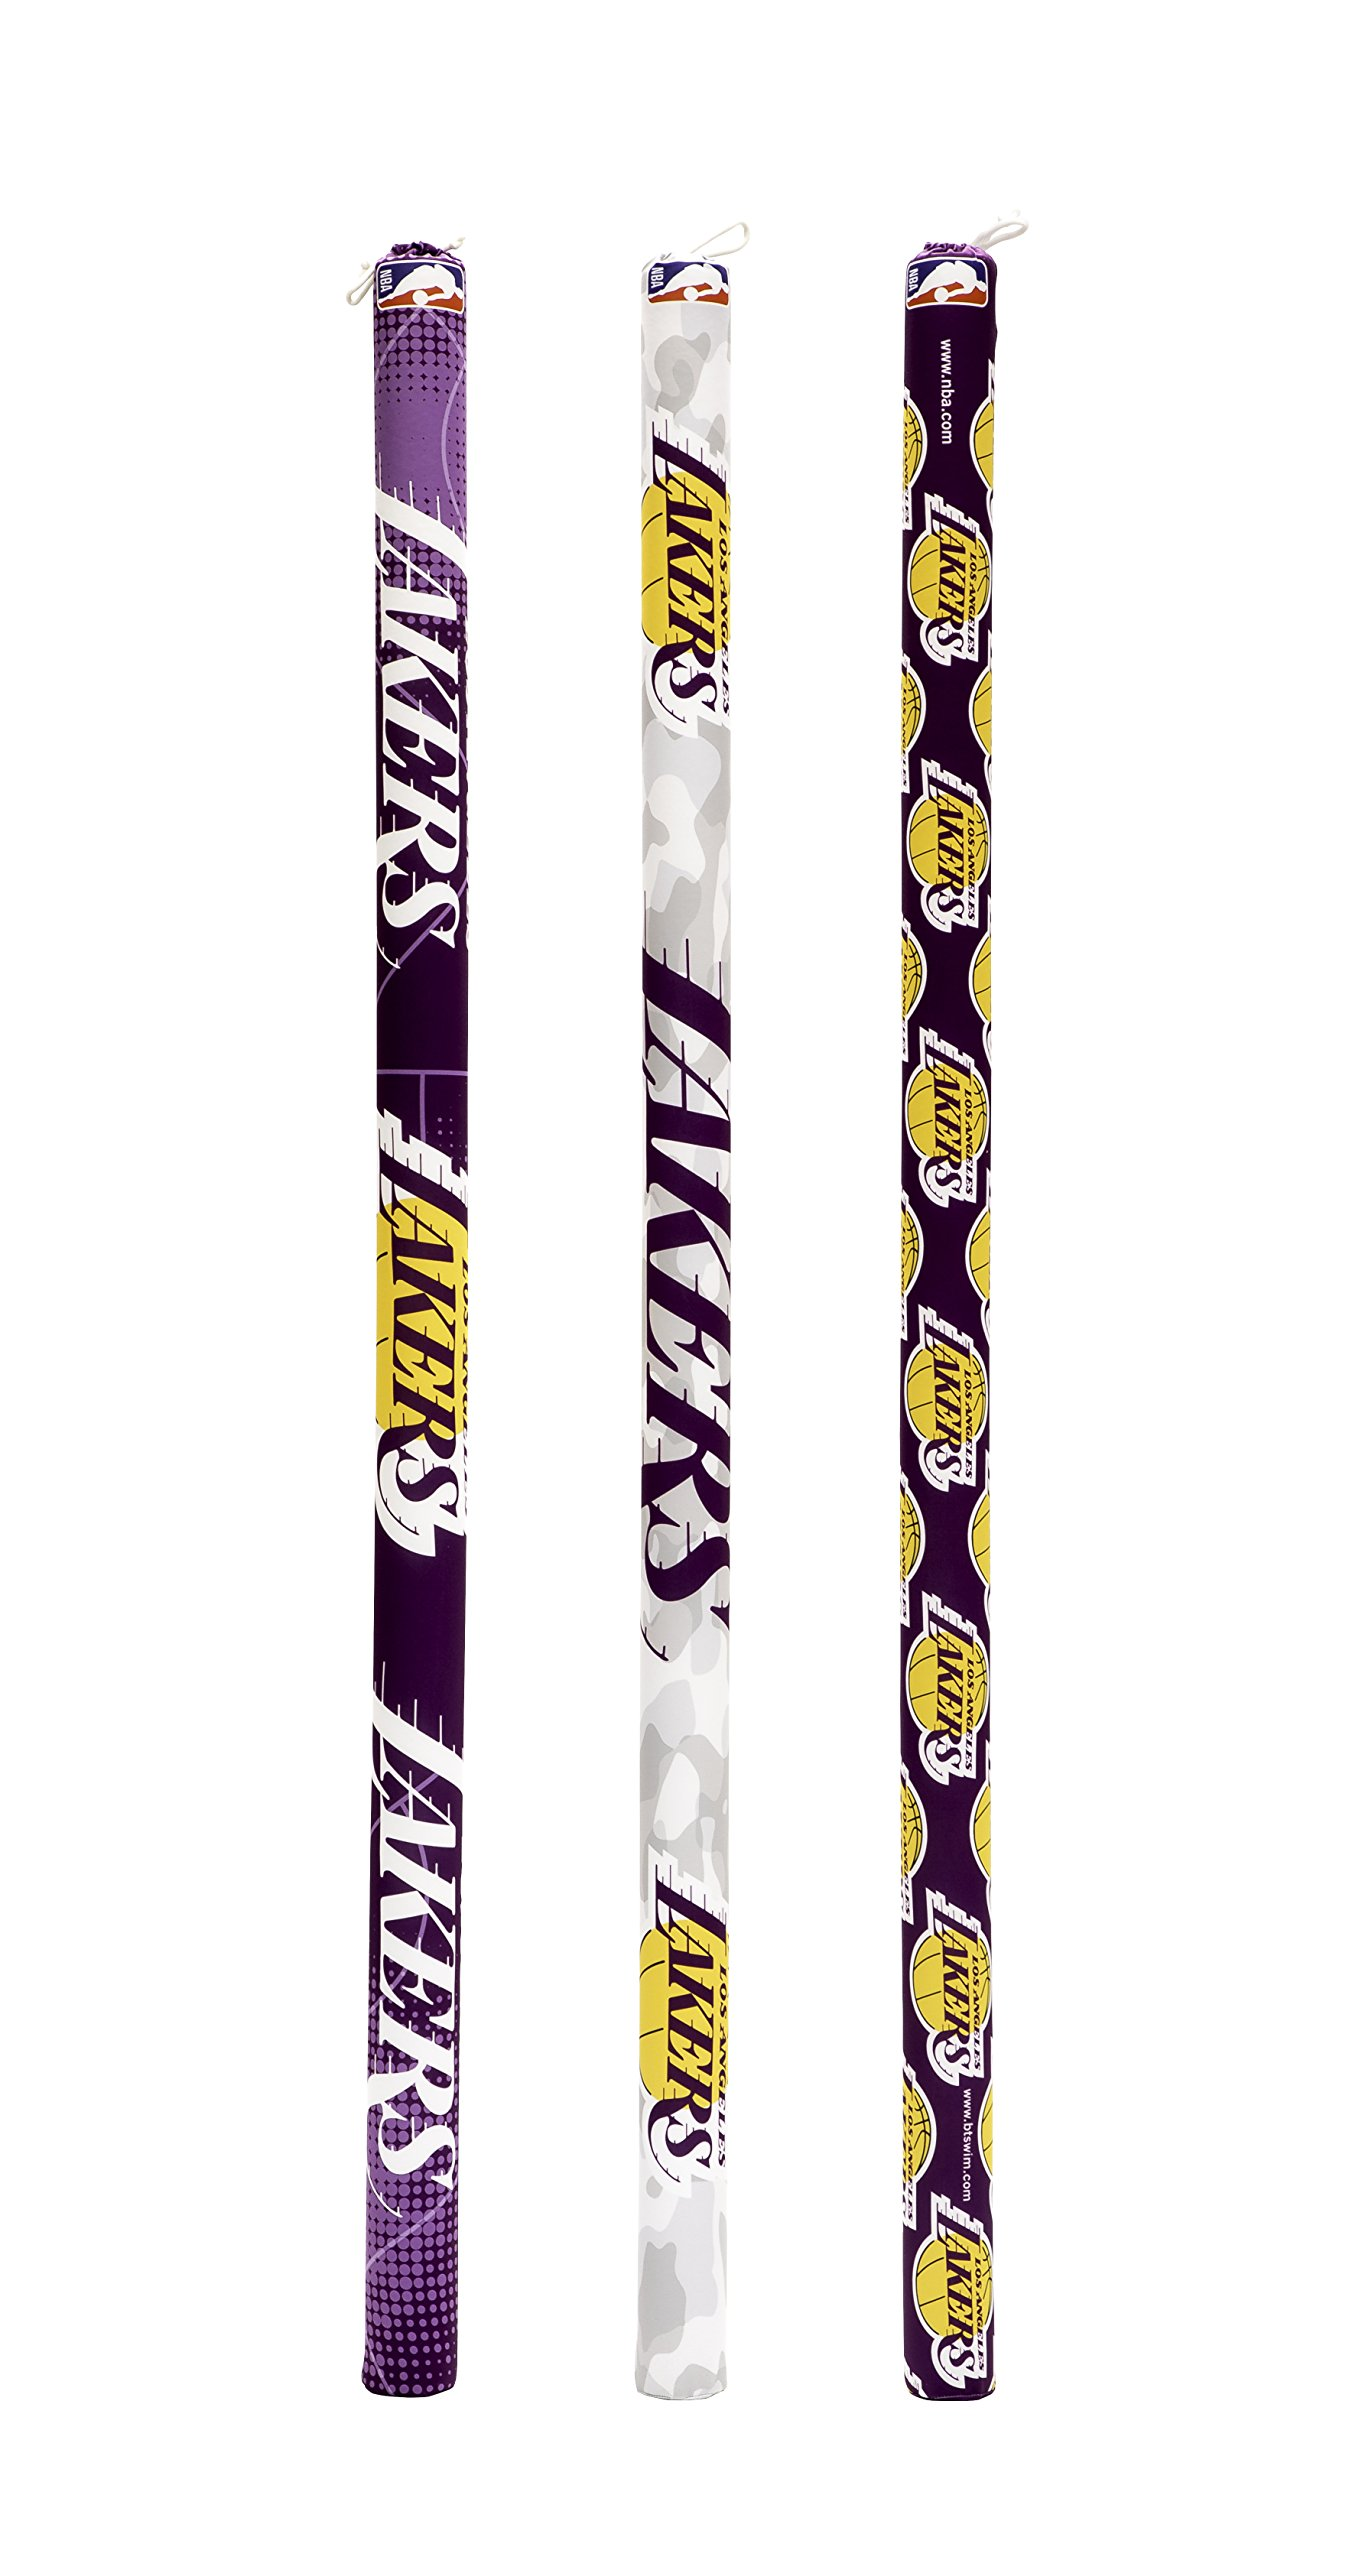 Btswim NBA Los Angeles Lakers Pool Noodles (Pack of 3) by BTswim